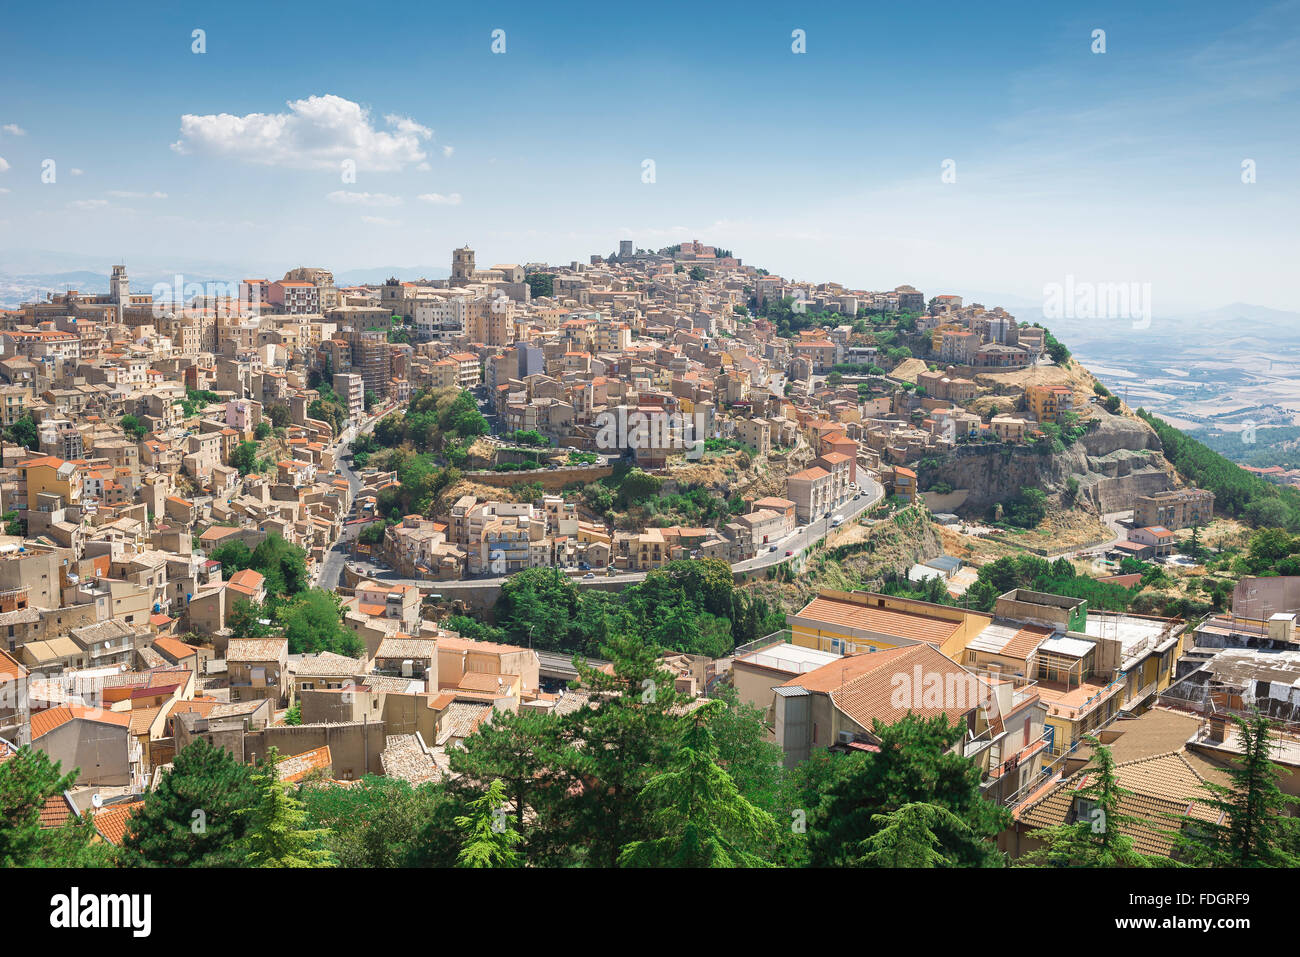 Sicily hill town, aerial view of the city of Enna, situated high on a hill in the middle of the island of Sicily. - Stock Image